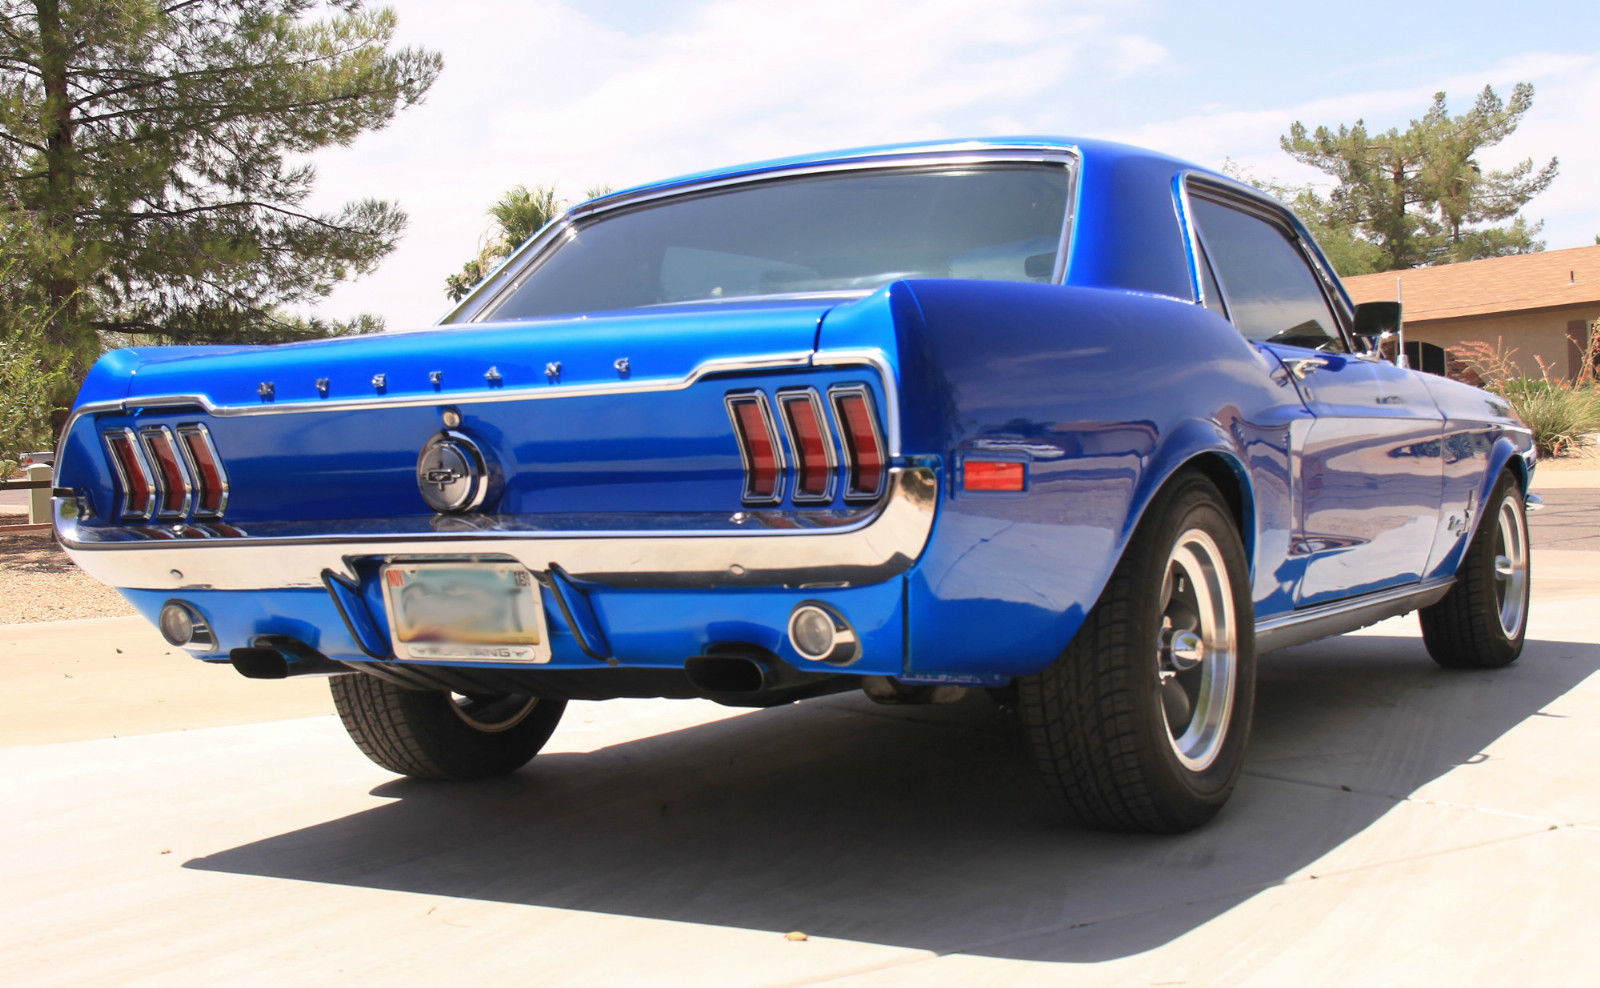 1968 68 ford mustang coupe 347 420hp blue custom hot rod classic ford mustang 1968 for sale. Black Bedroom Furniture Sets. Home Design Ideas